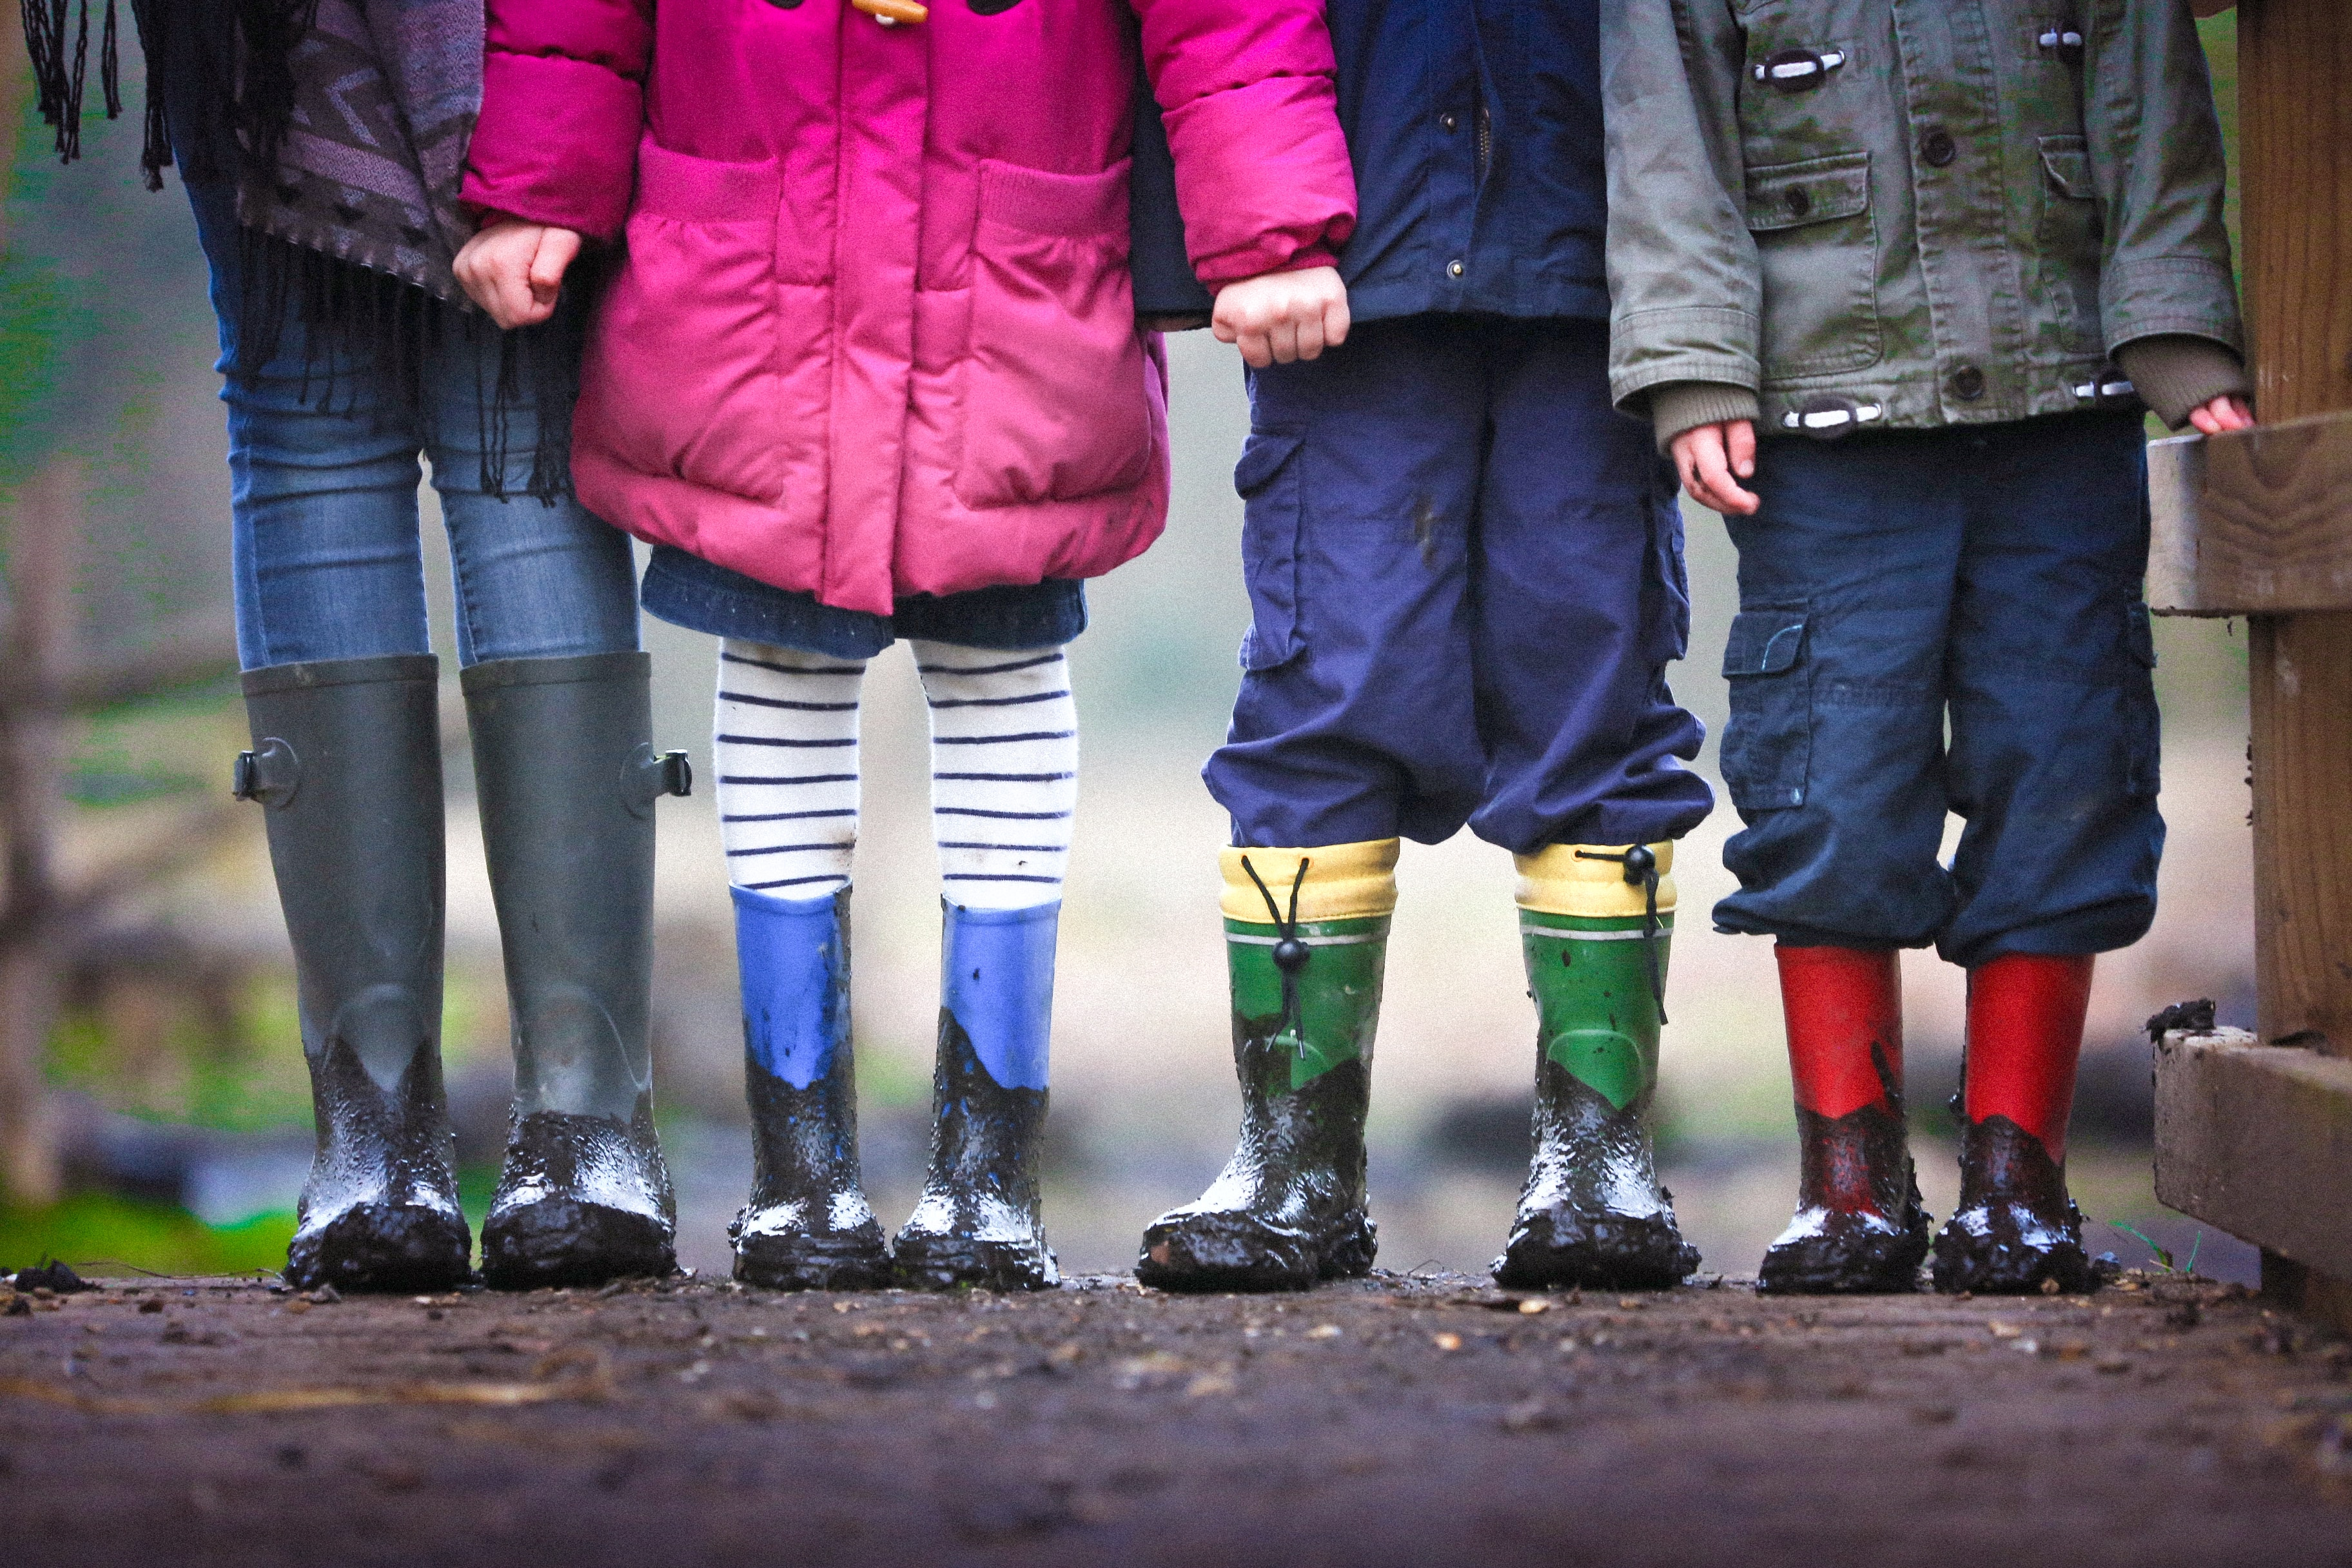 Kids in rain boots standing together